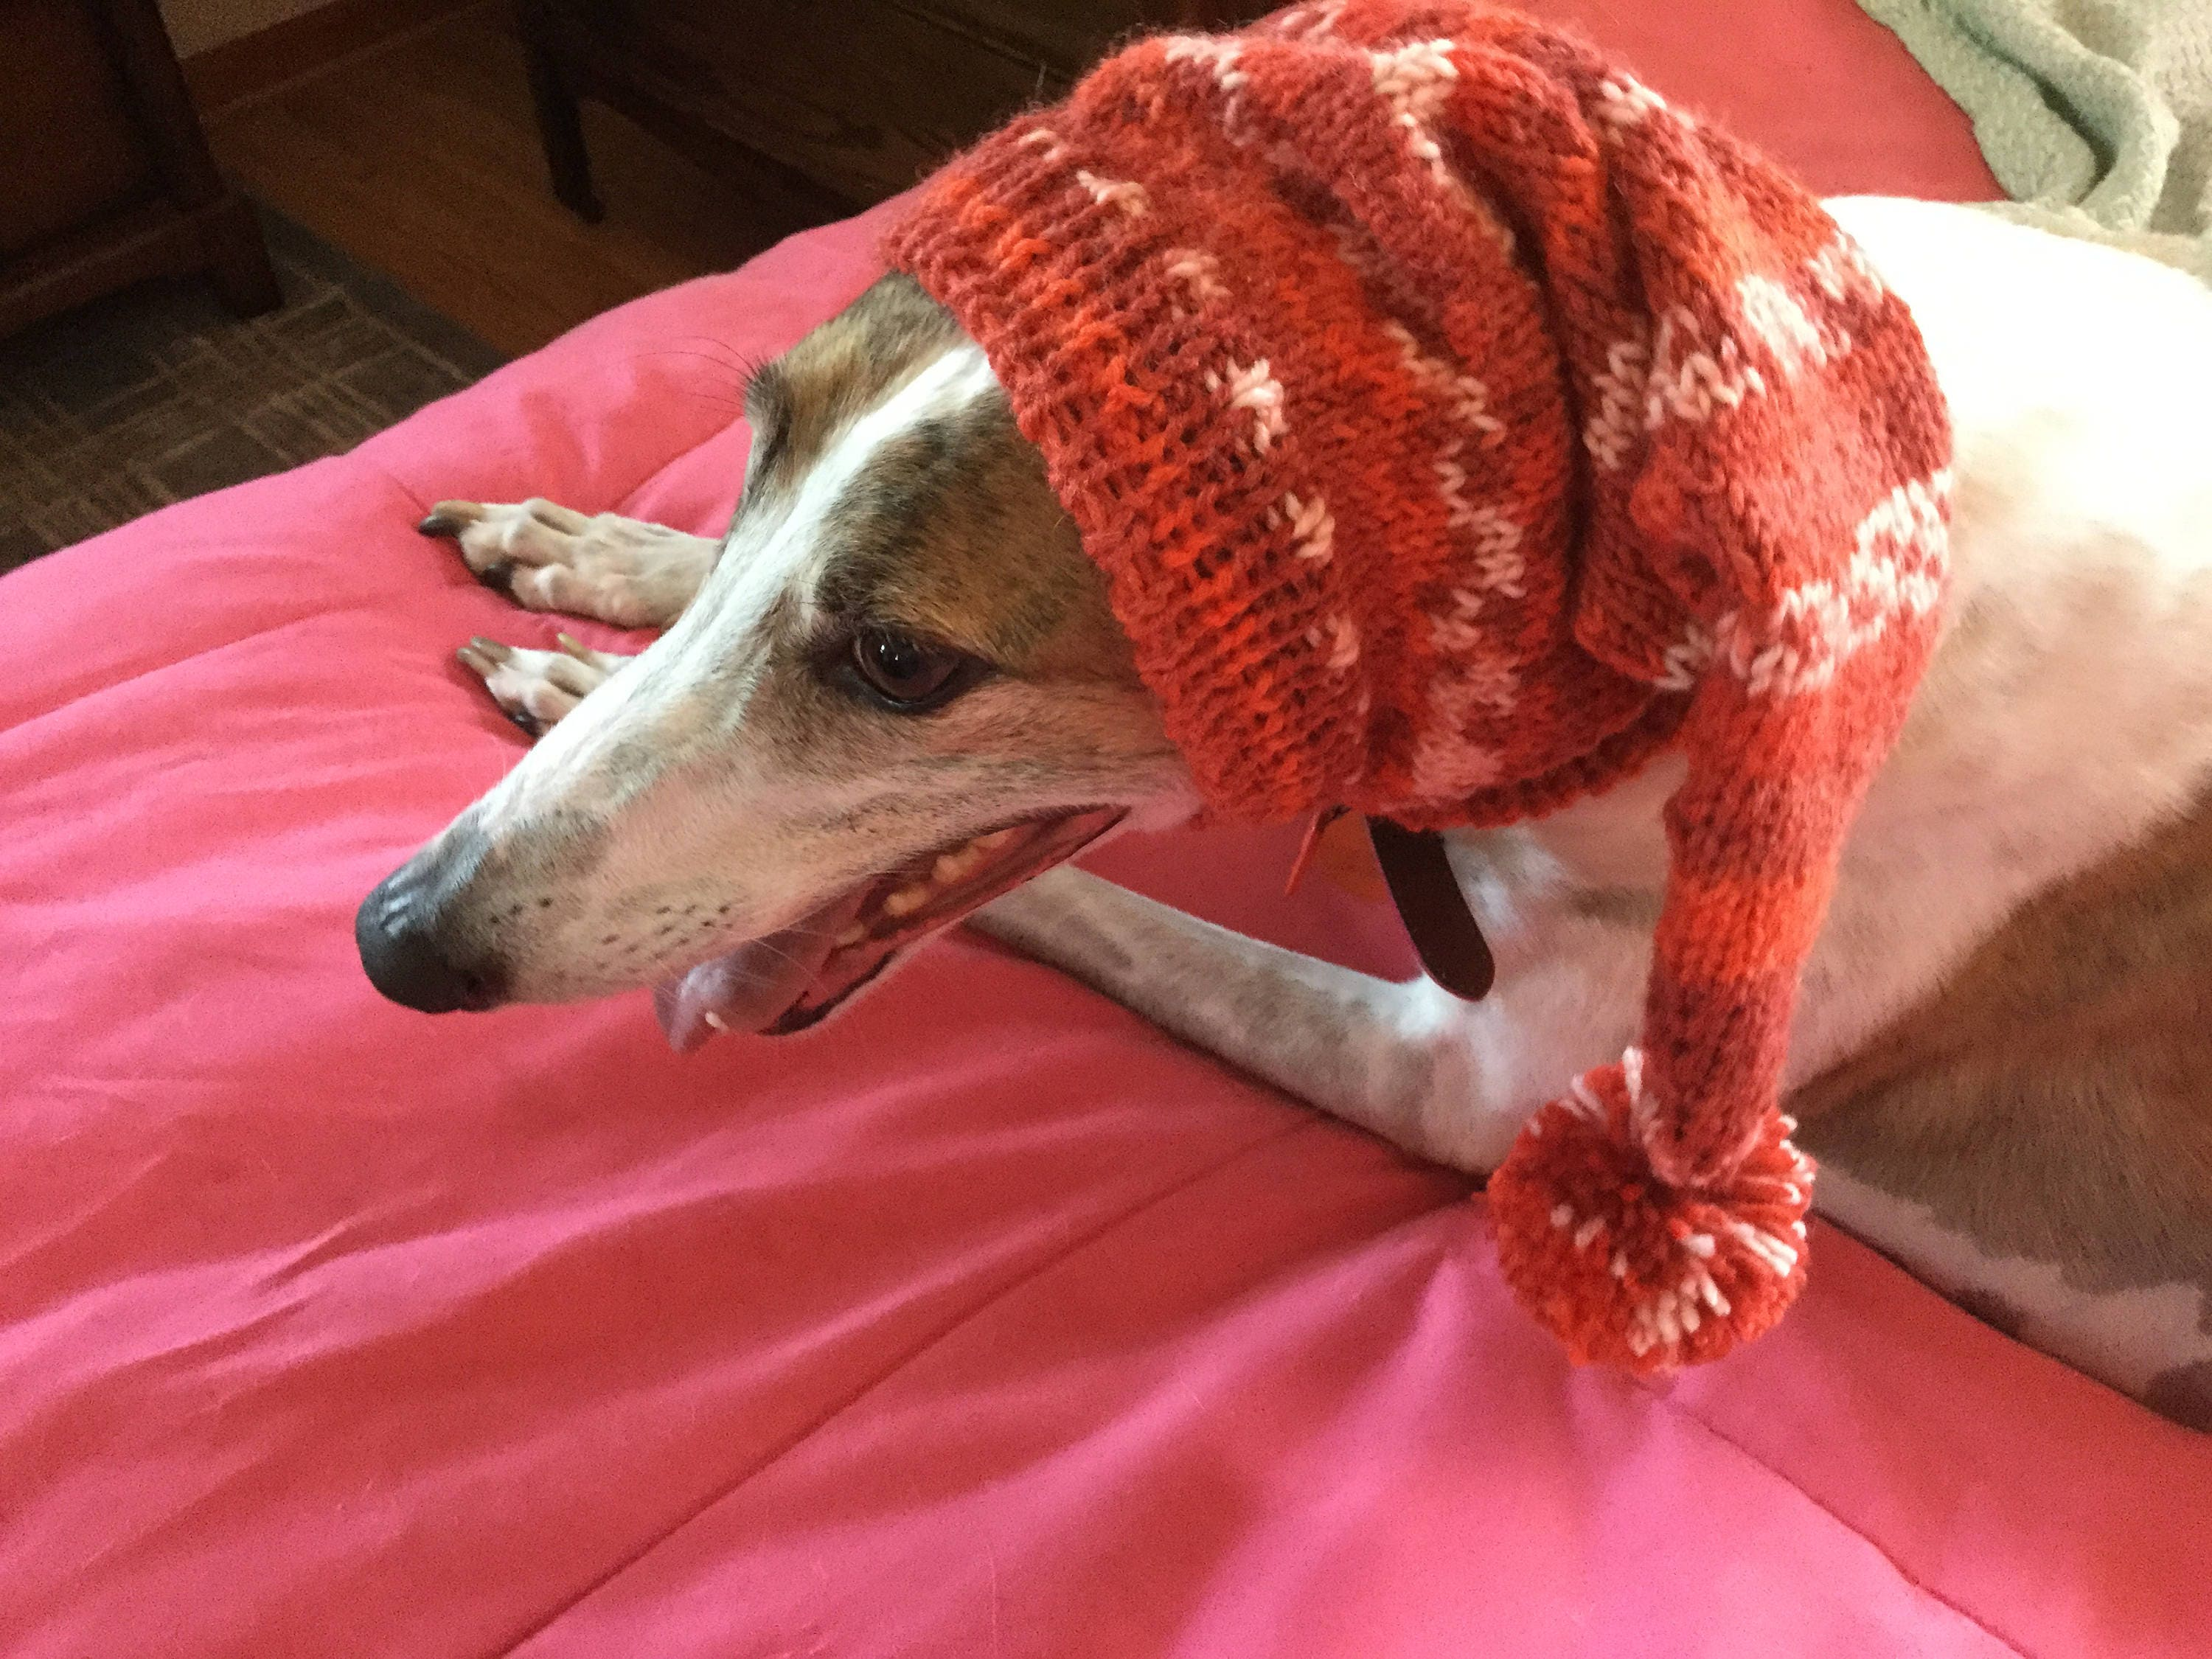 Pointed hat with snood for greyhound or other large sighthound pointed hat with snood for greyhound or other large sighthound fair isle pattern chile pepper bankloansurffo Images